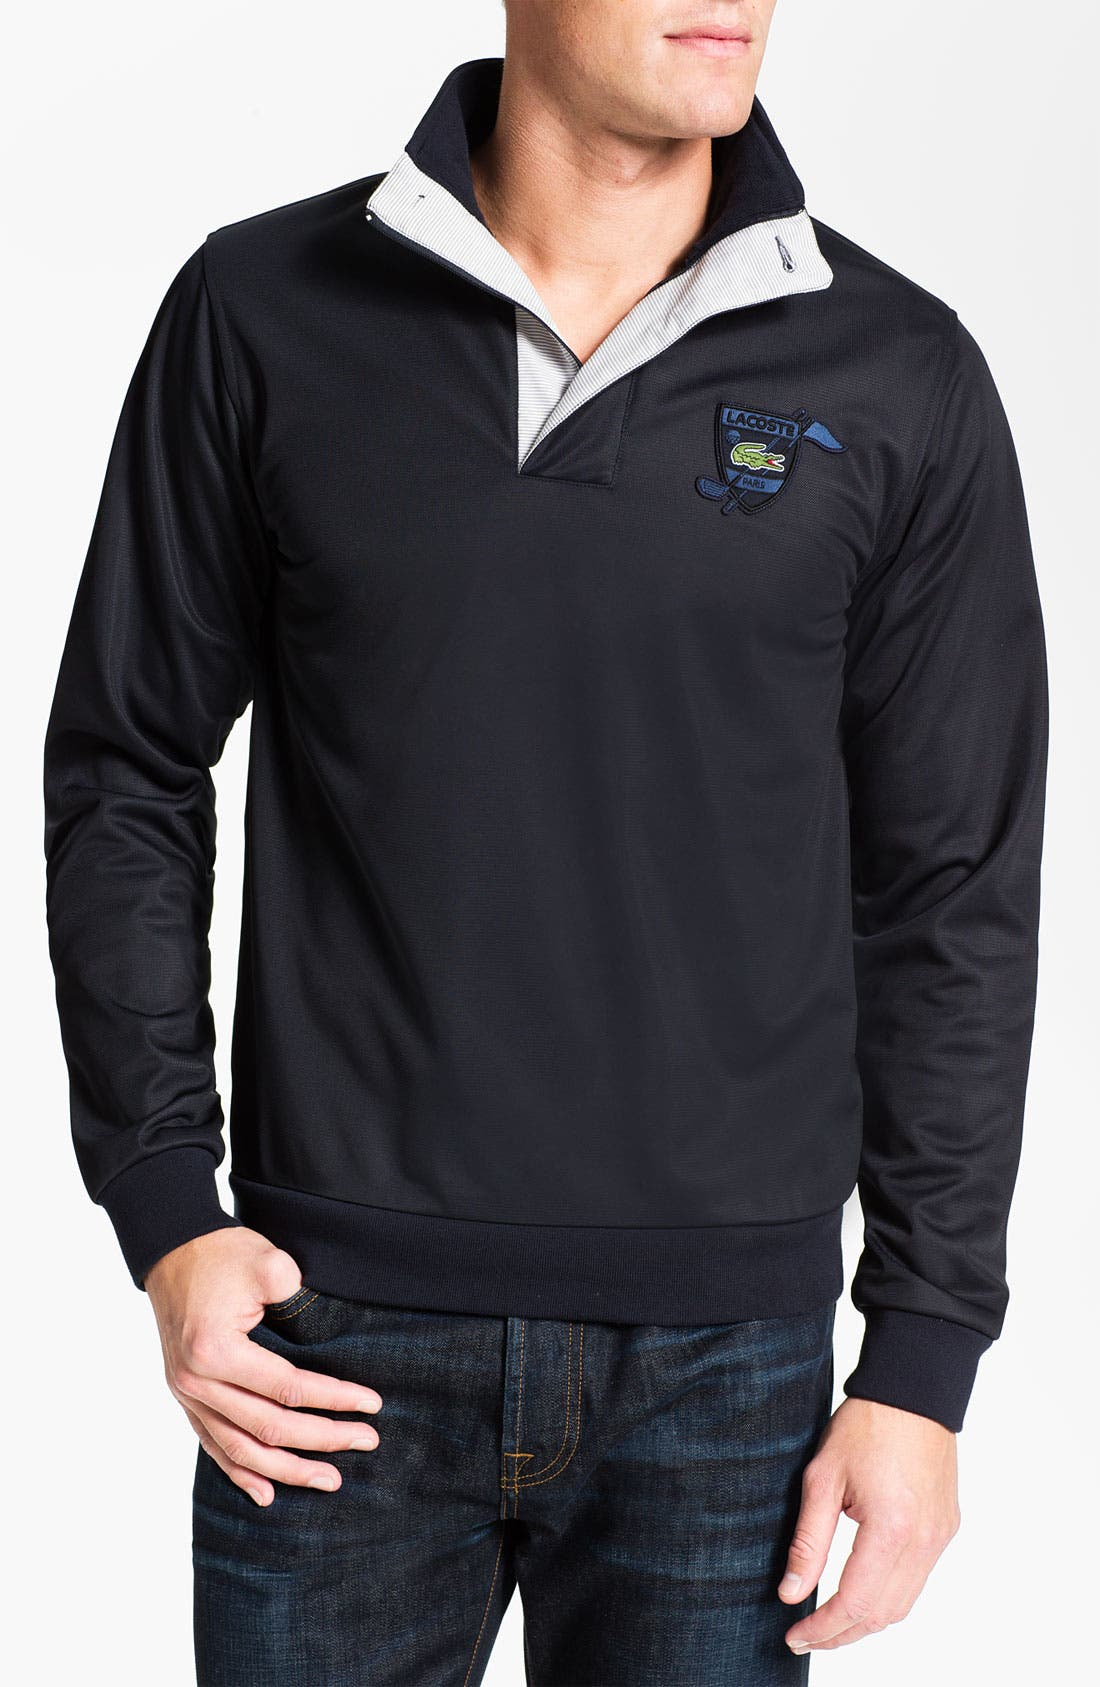 Alternate Image 1 Selected - Lacoste Golf Fleece Pullover